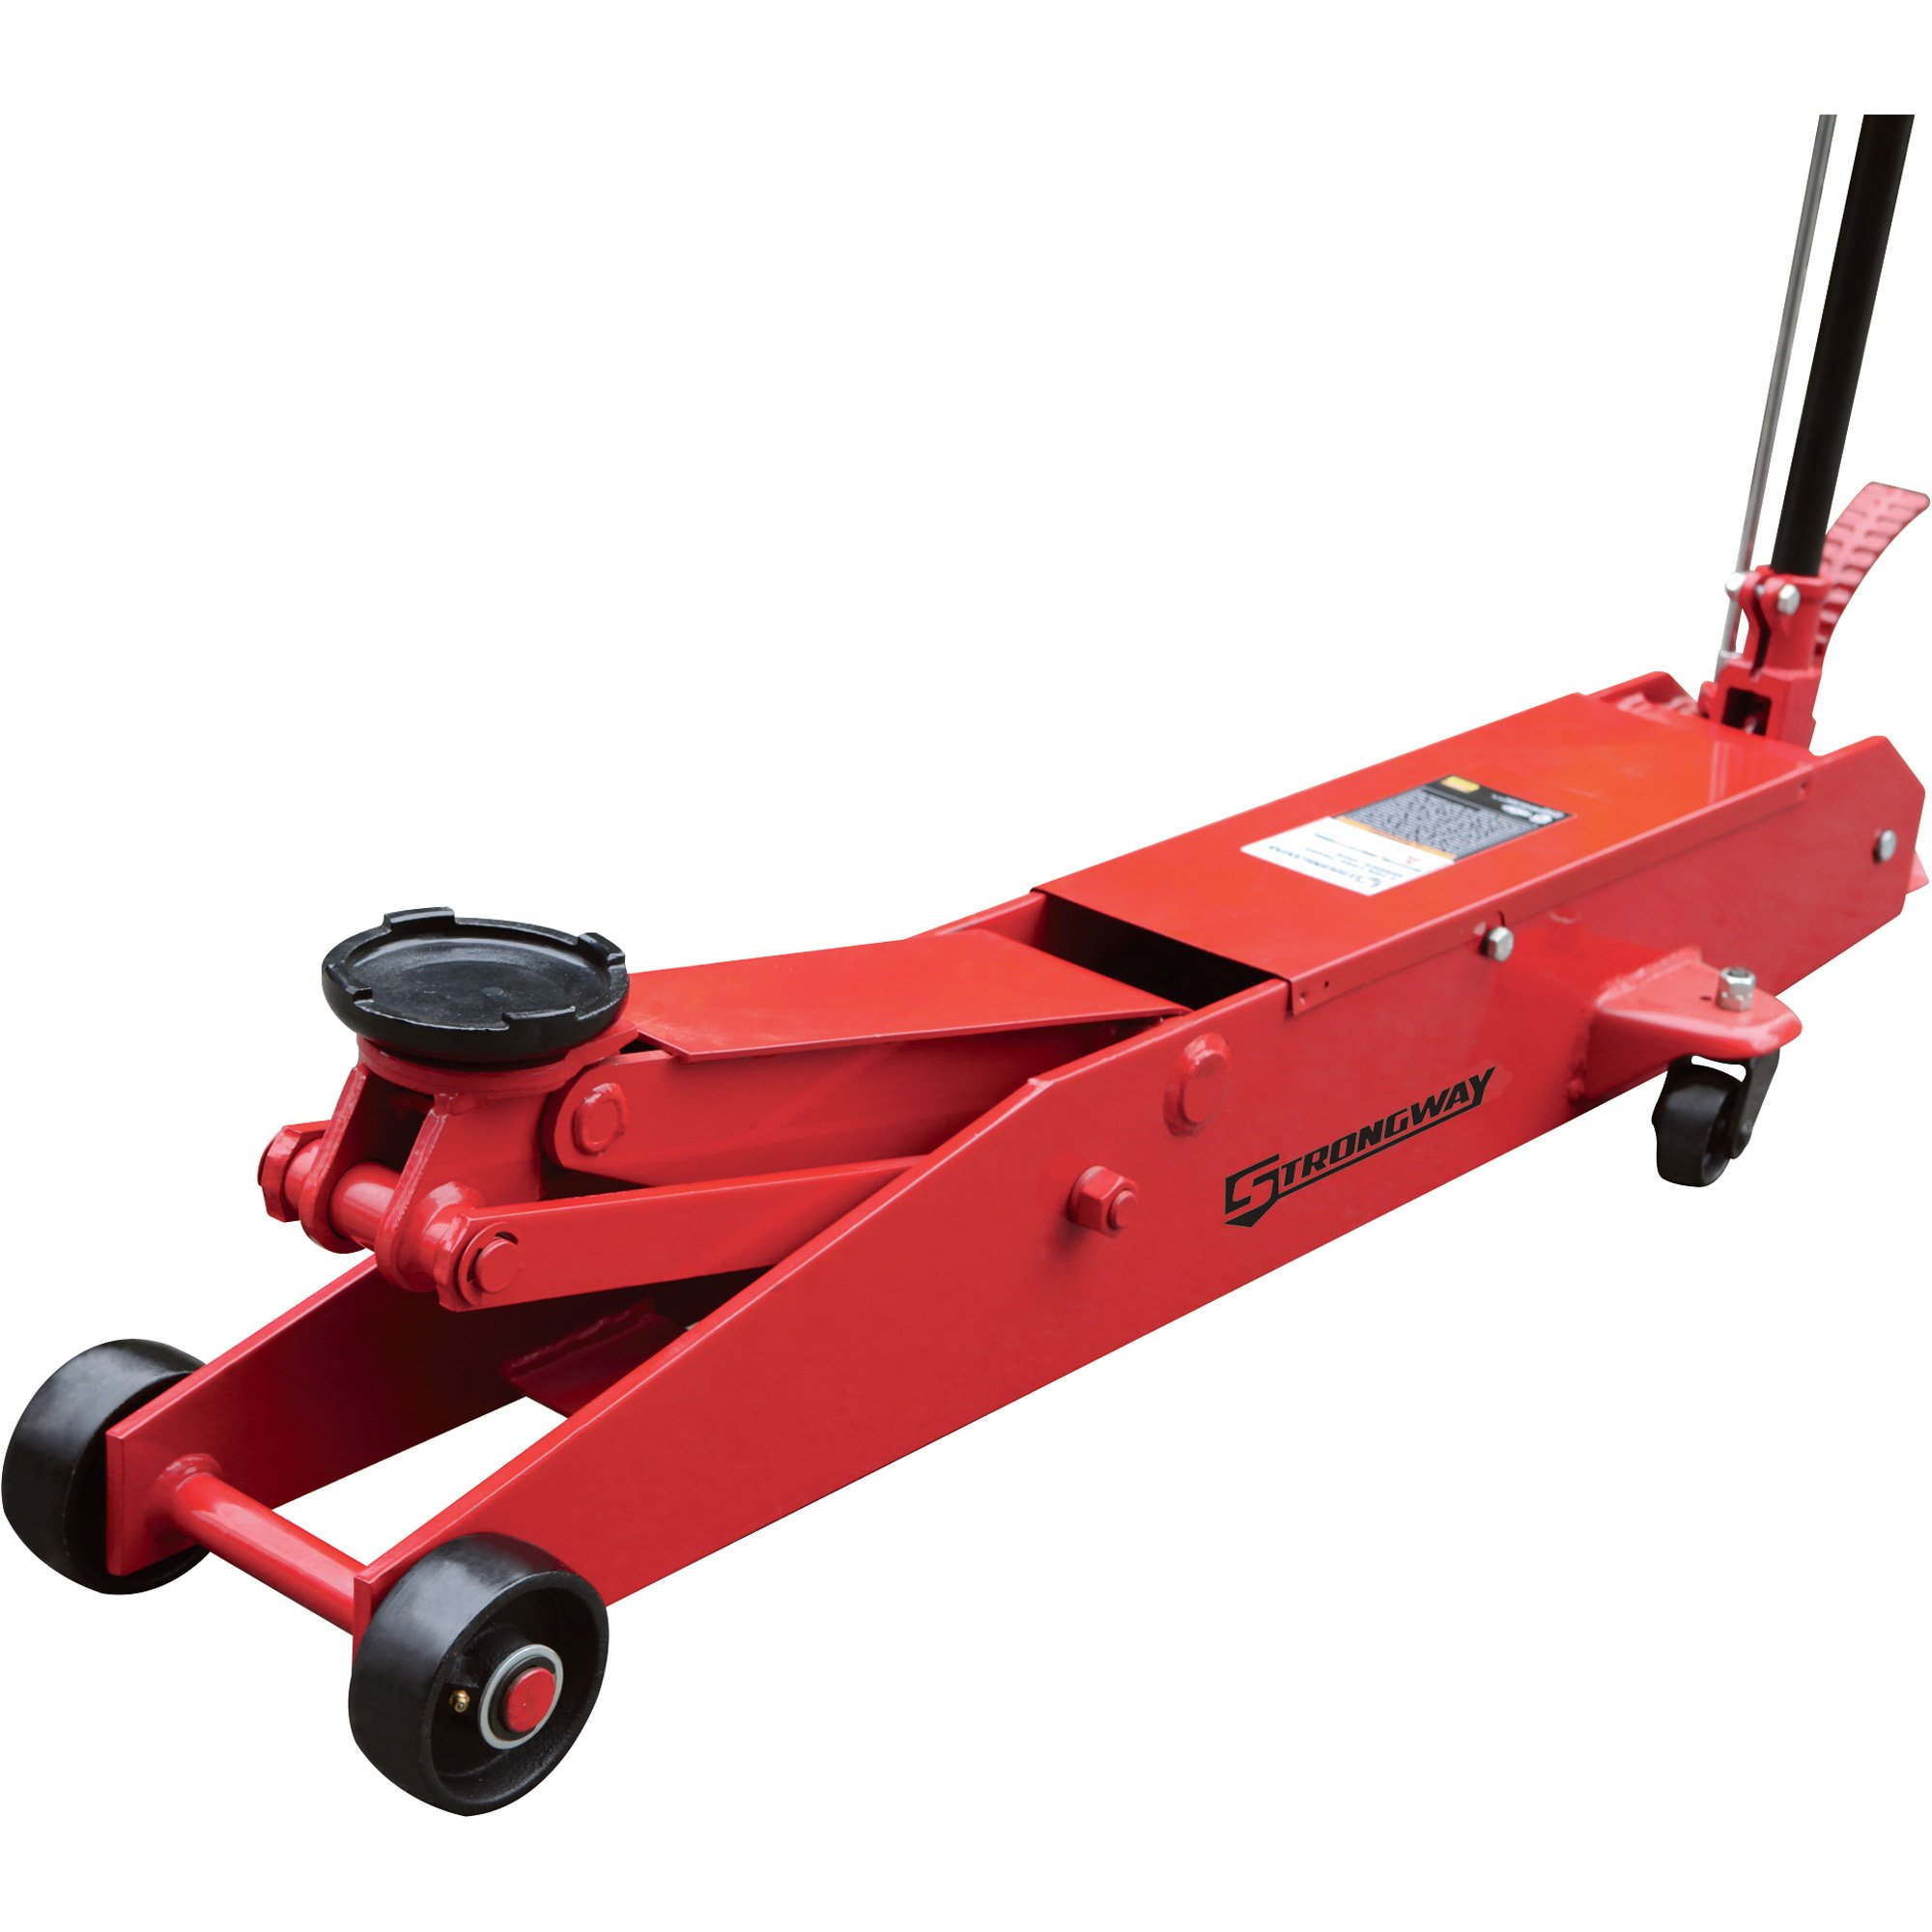 Strongway 5-Ton Hydraulic Long Frame Service Floor Jack by Strongway